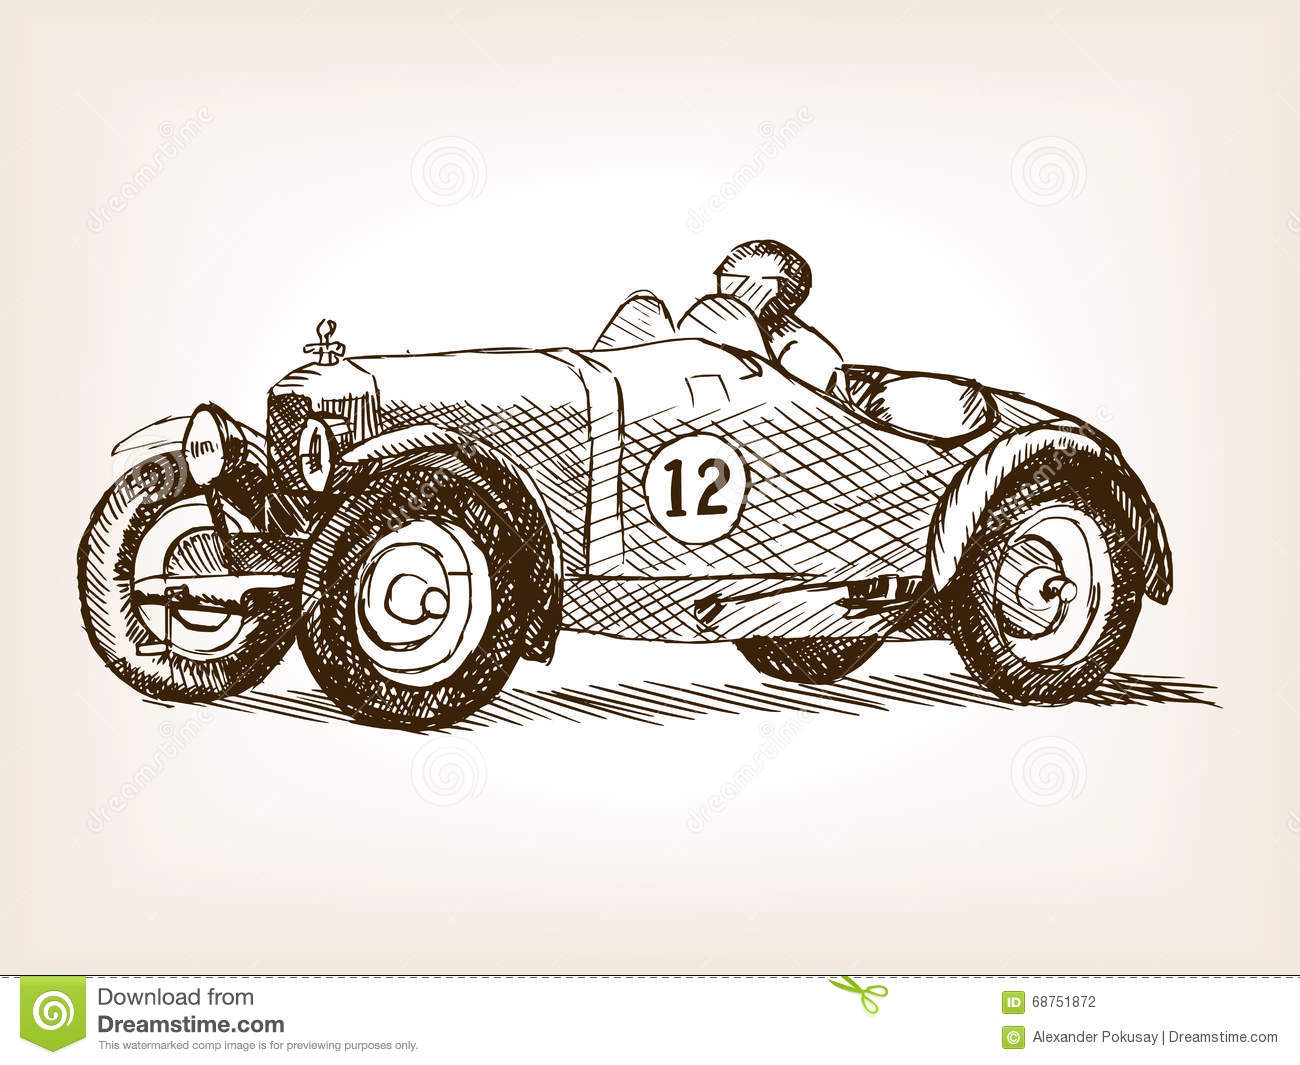 Notebook And Pen Sketch Stock Vector Art More Images Of: Retro Sport Race Car Hand Drawn Sketch Vector Stock